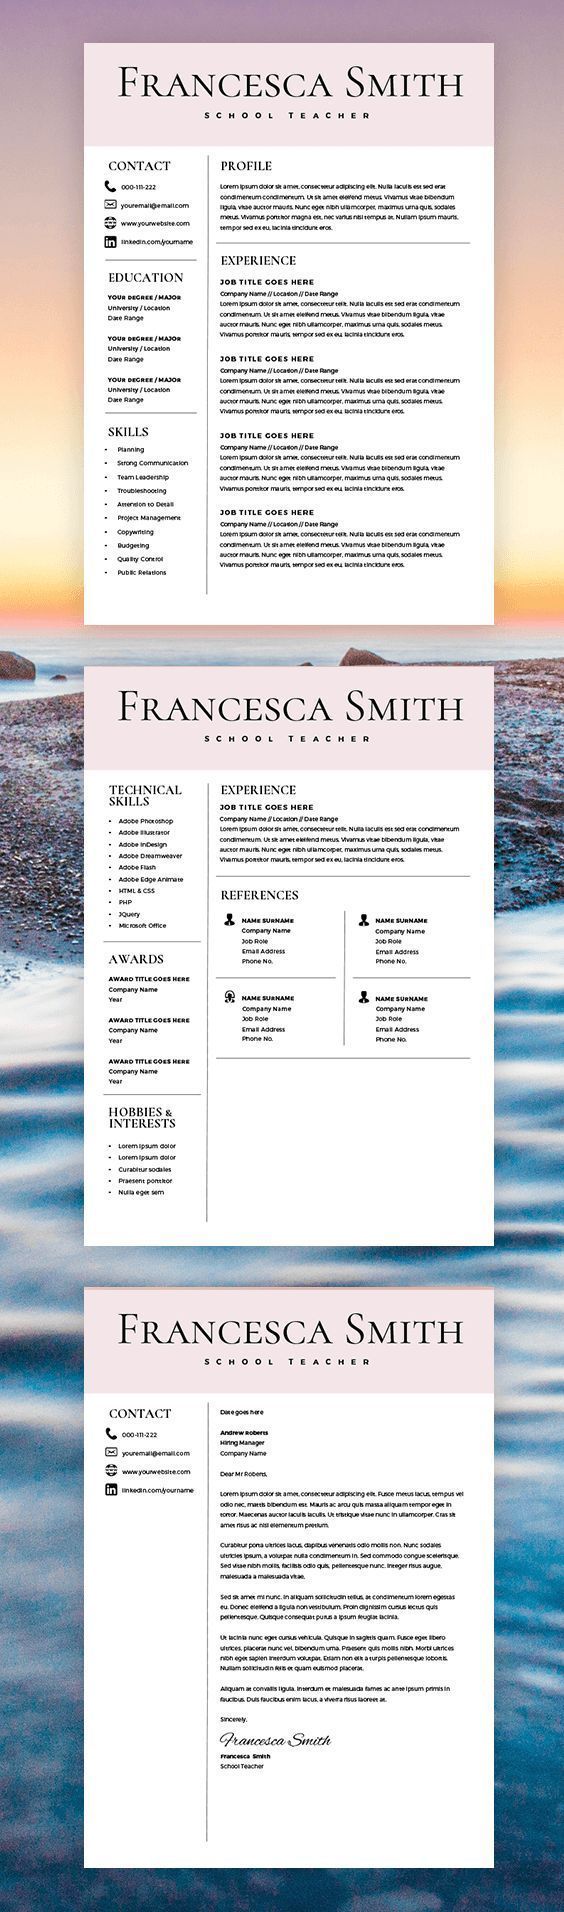 Teacher Resume Template Resume for Teacher